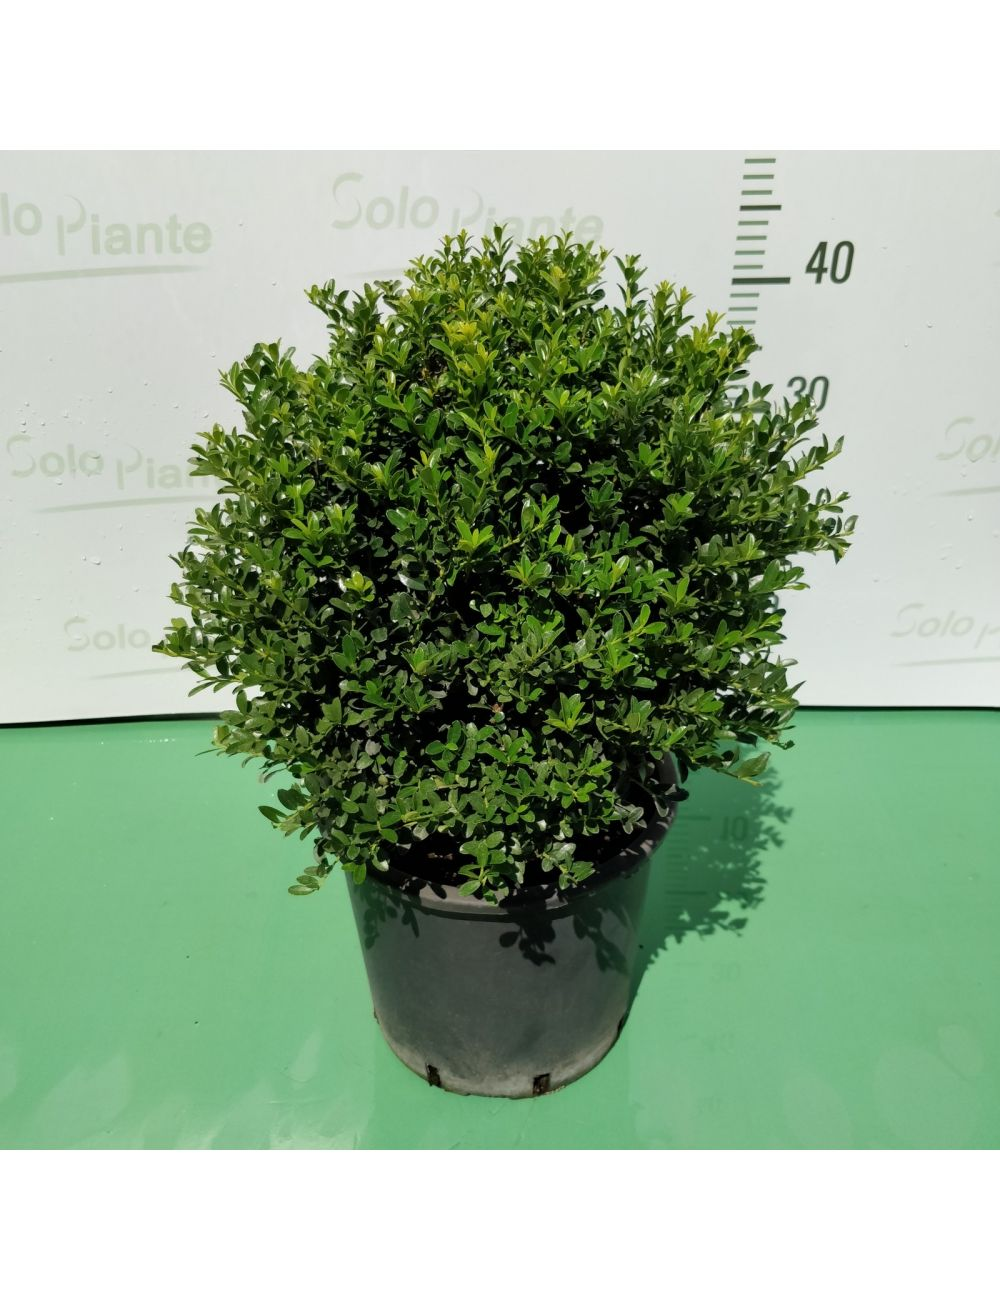 Come Potare A Palla sfera di ilex crenata - vendita piante on line - solopiante.it